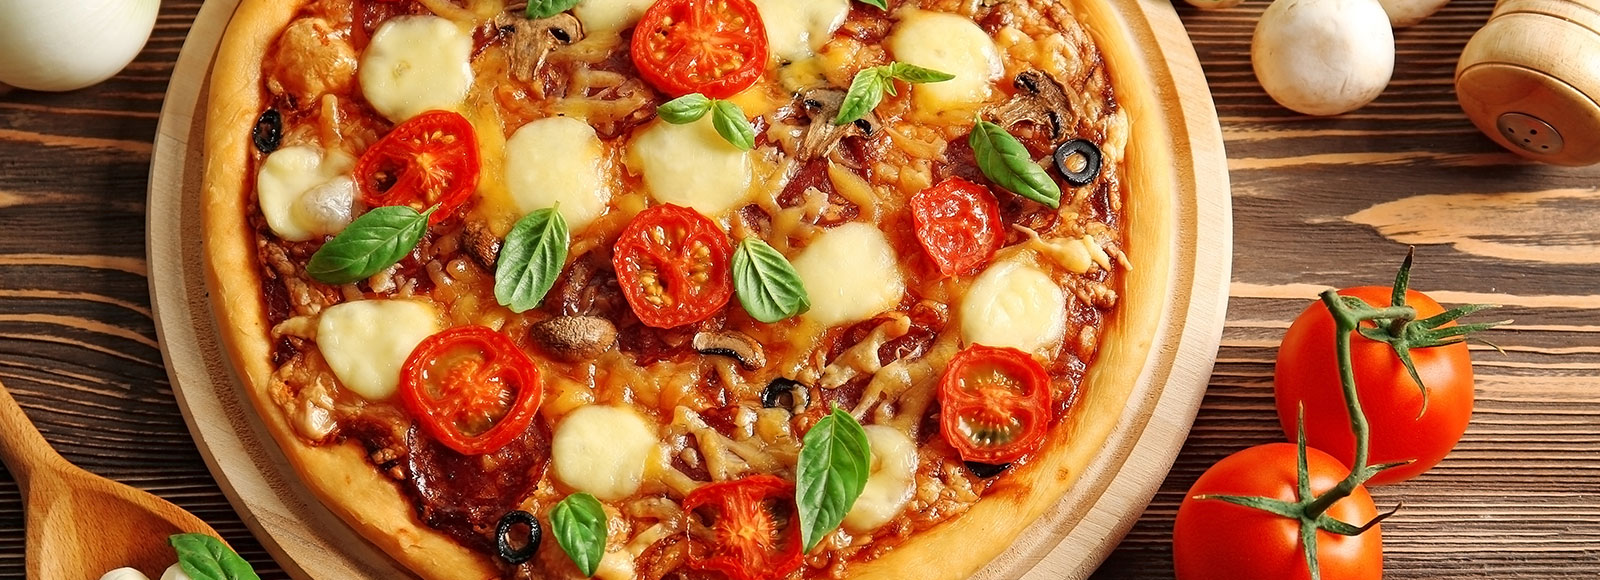 Pizza To Go Pizza To Go Newcastle Upon Tyne Takeaway